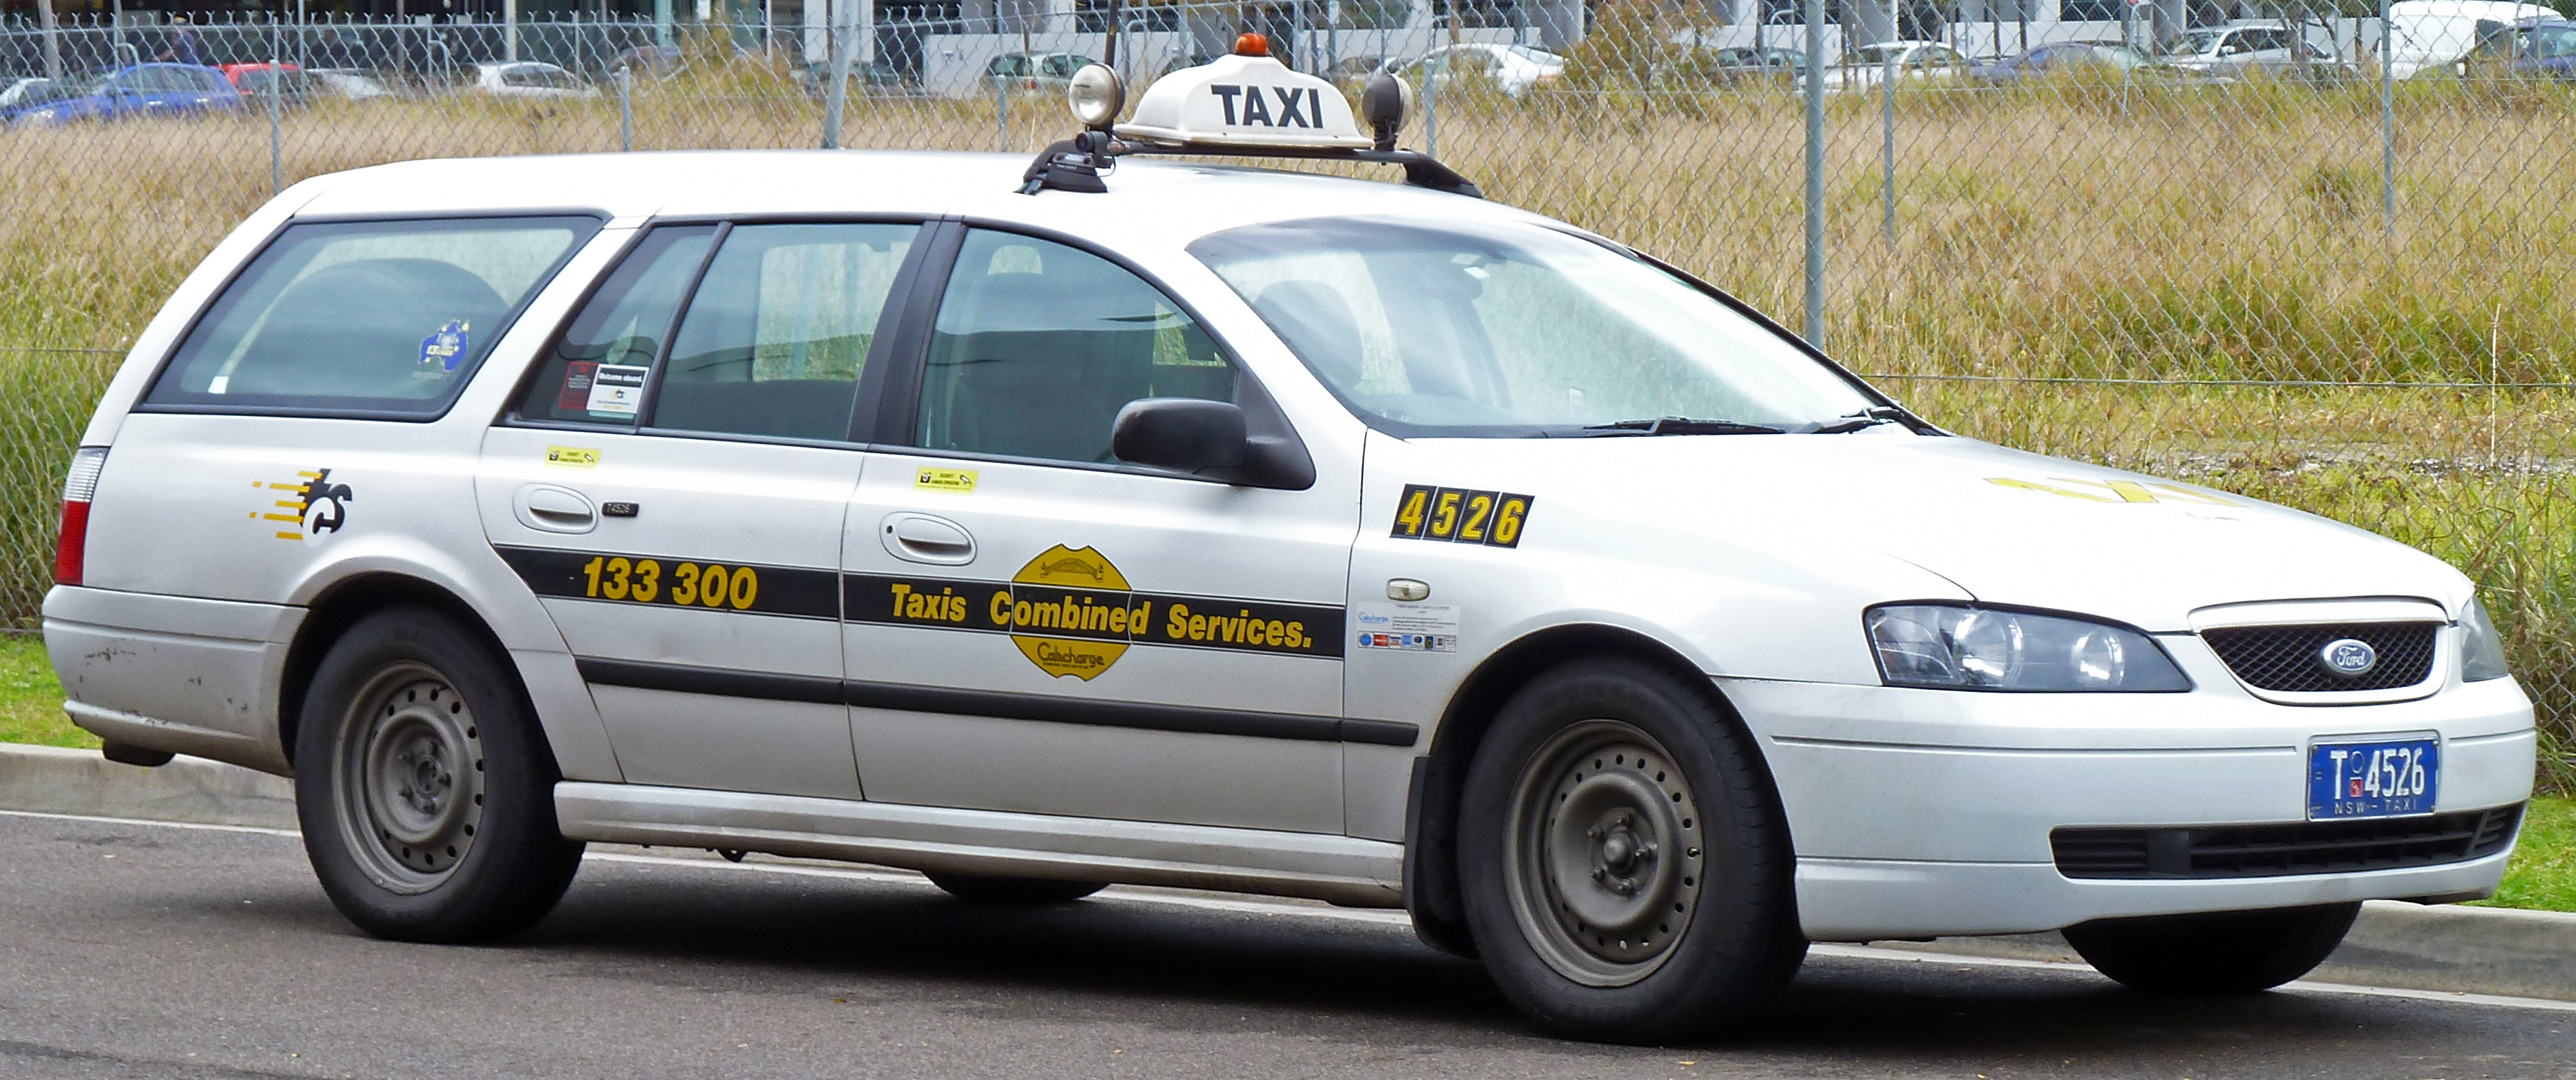 2002-2004_Ford_Falcon_(BA)_XT_station_wagon,_Taxis_Combined_taxi_(2010-07-10)